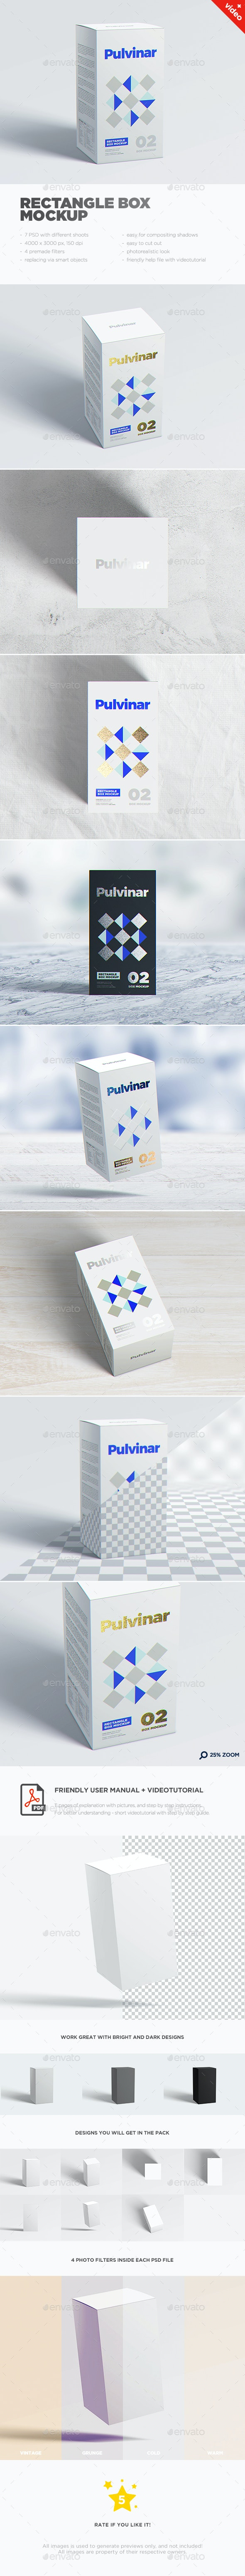 Box / Packaging MockUp - Rectangle - Miscellaneous Packaging